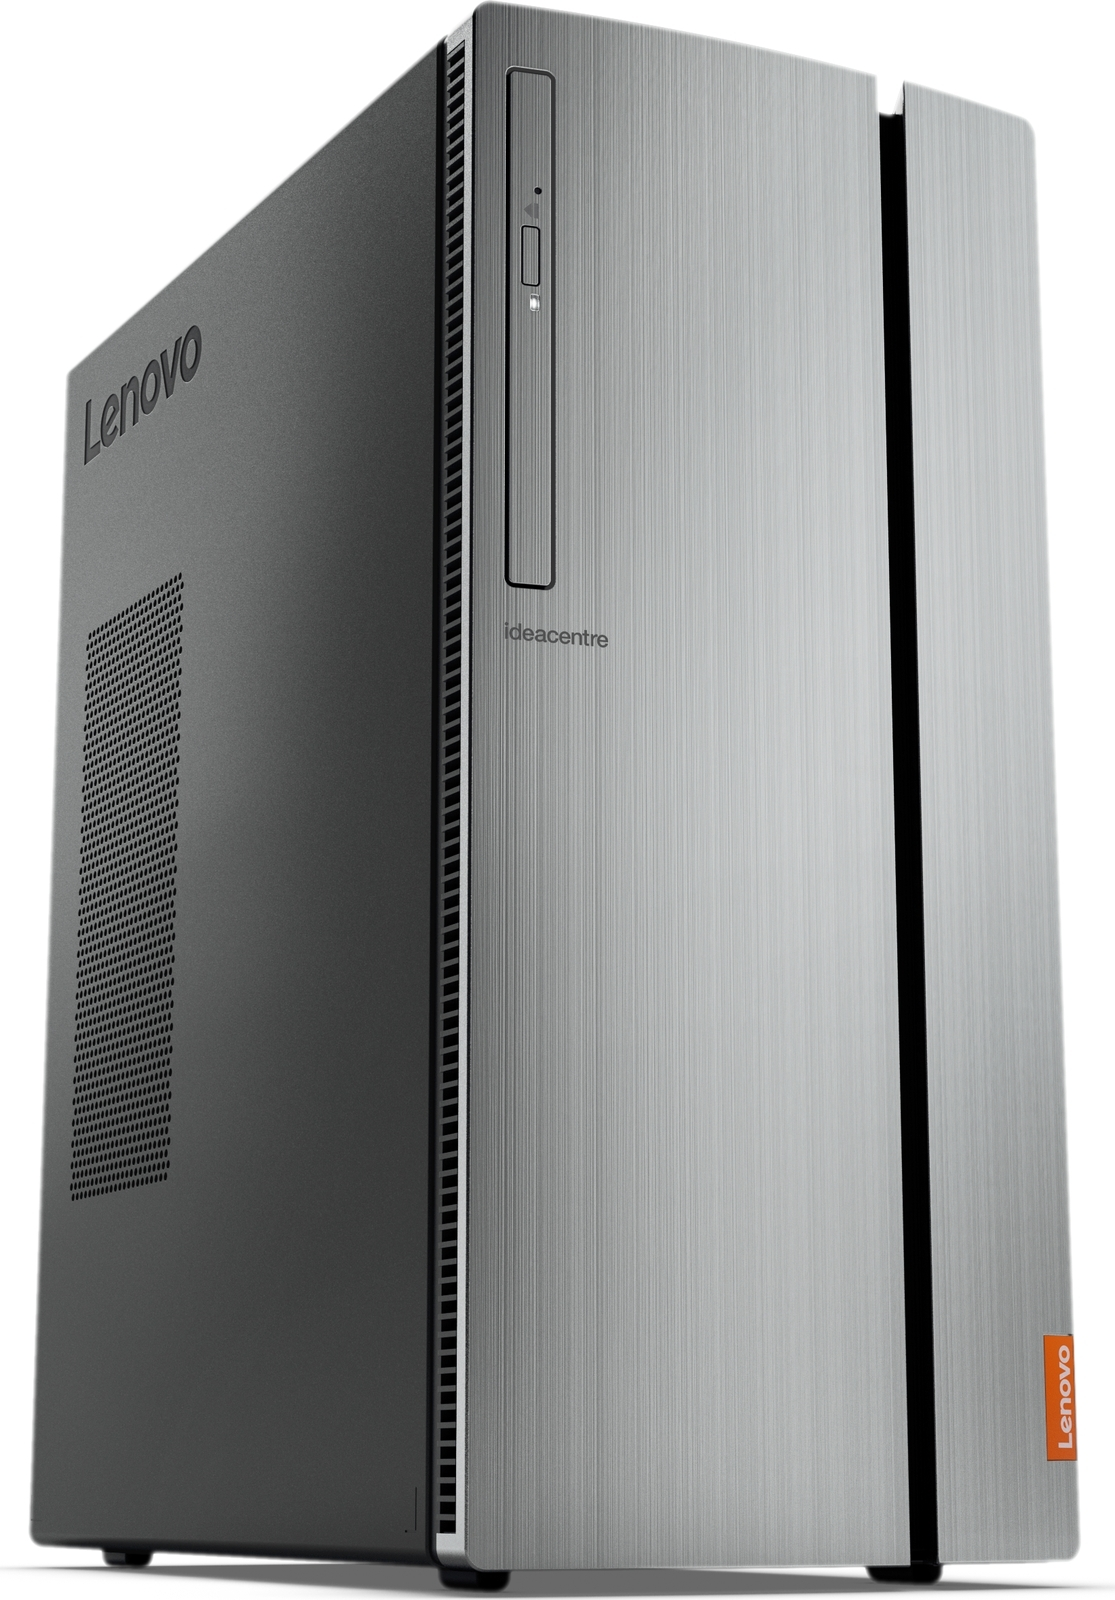 Системный блок Lenovo IdeaCentre 720-18ASU MT, 90H1004MRS, черный, серебристый lenovo lenovo ideacentre h50 50 mt 90b7002vrs